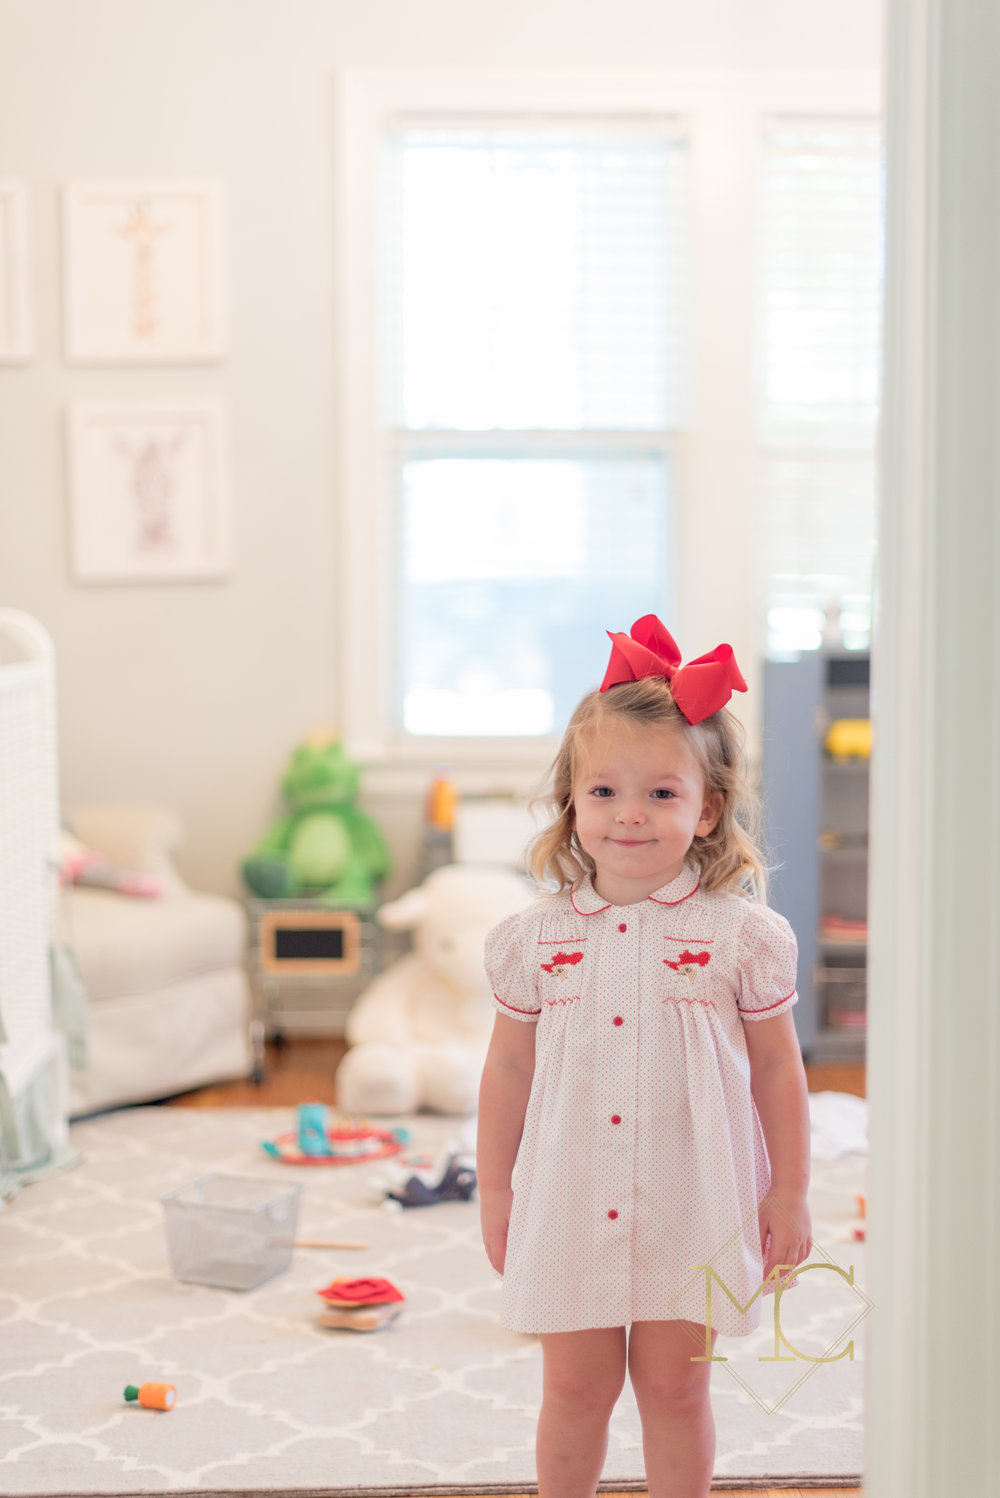 image from nashville family lifestyle photo session of toddler in red dress